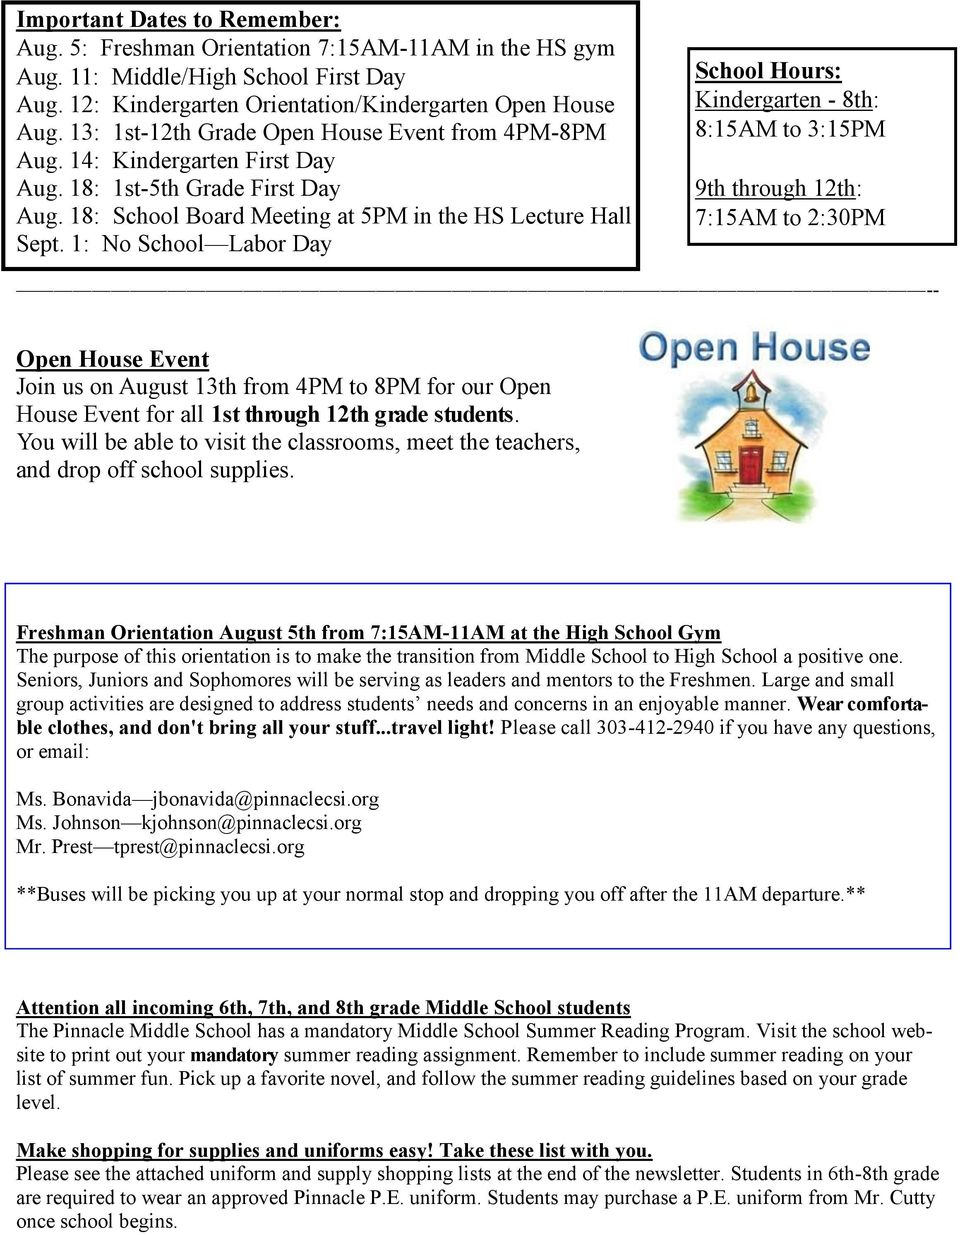 1: No School Labor Day School Hours: Kindergarten - 8th: 8:15AM to 3:15PM 9th through 12th: 7:15AM to 2:30PM -- Open House Event Join us on August 13th from 4PM to 8PM for our Open House Event for